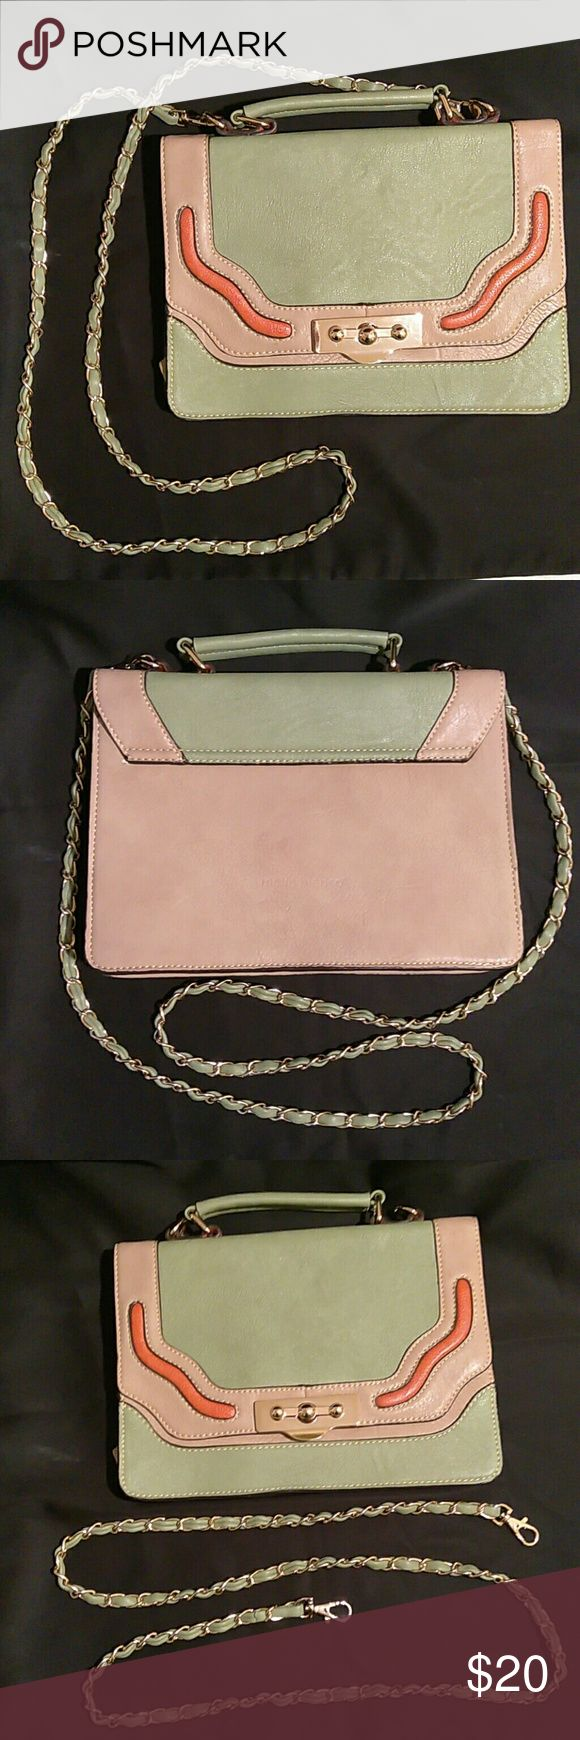 Melie Bianco Handbag New, never used Melie Bianco handbag. Neutral beige, green and orange with gold accents, detachable chain. Clean with no imperfections. Melie Bianco Bags